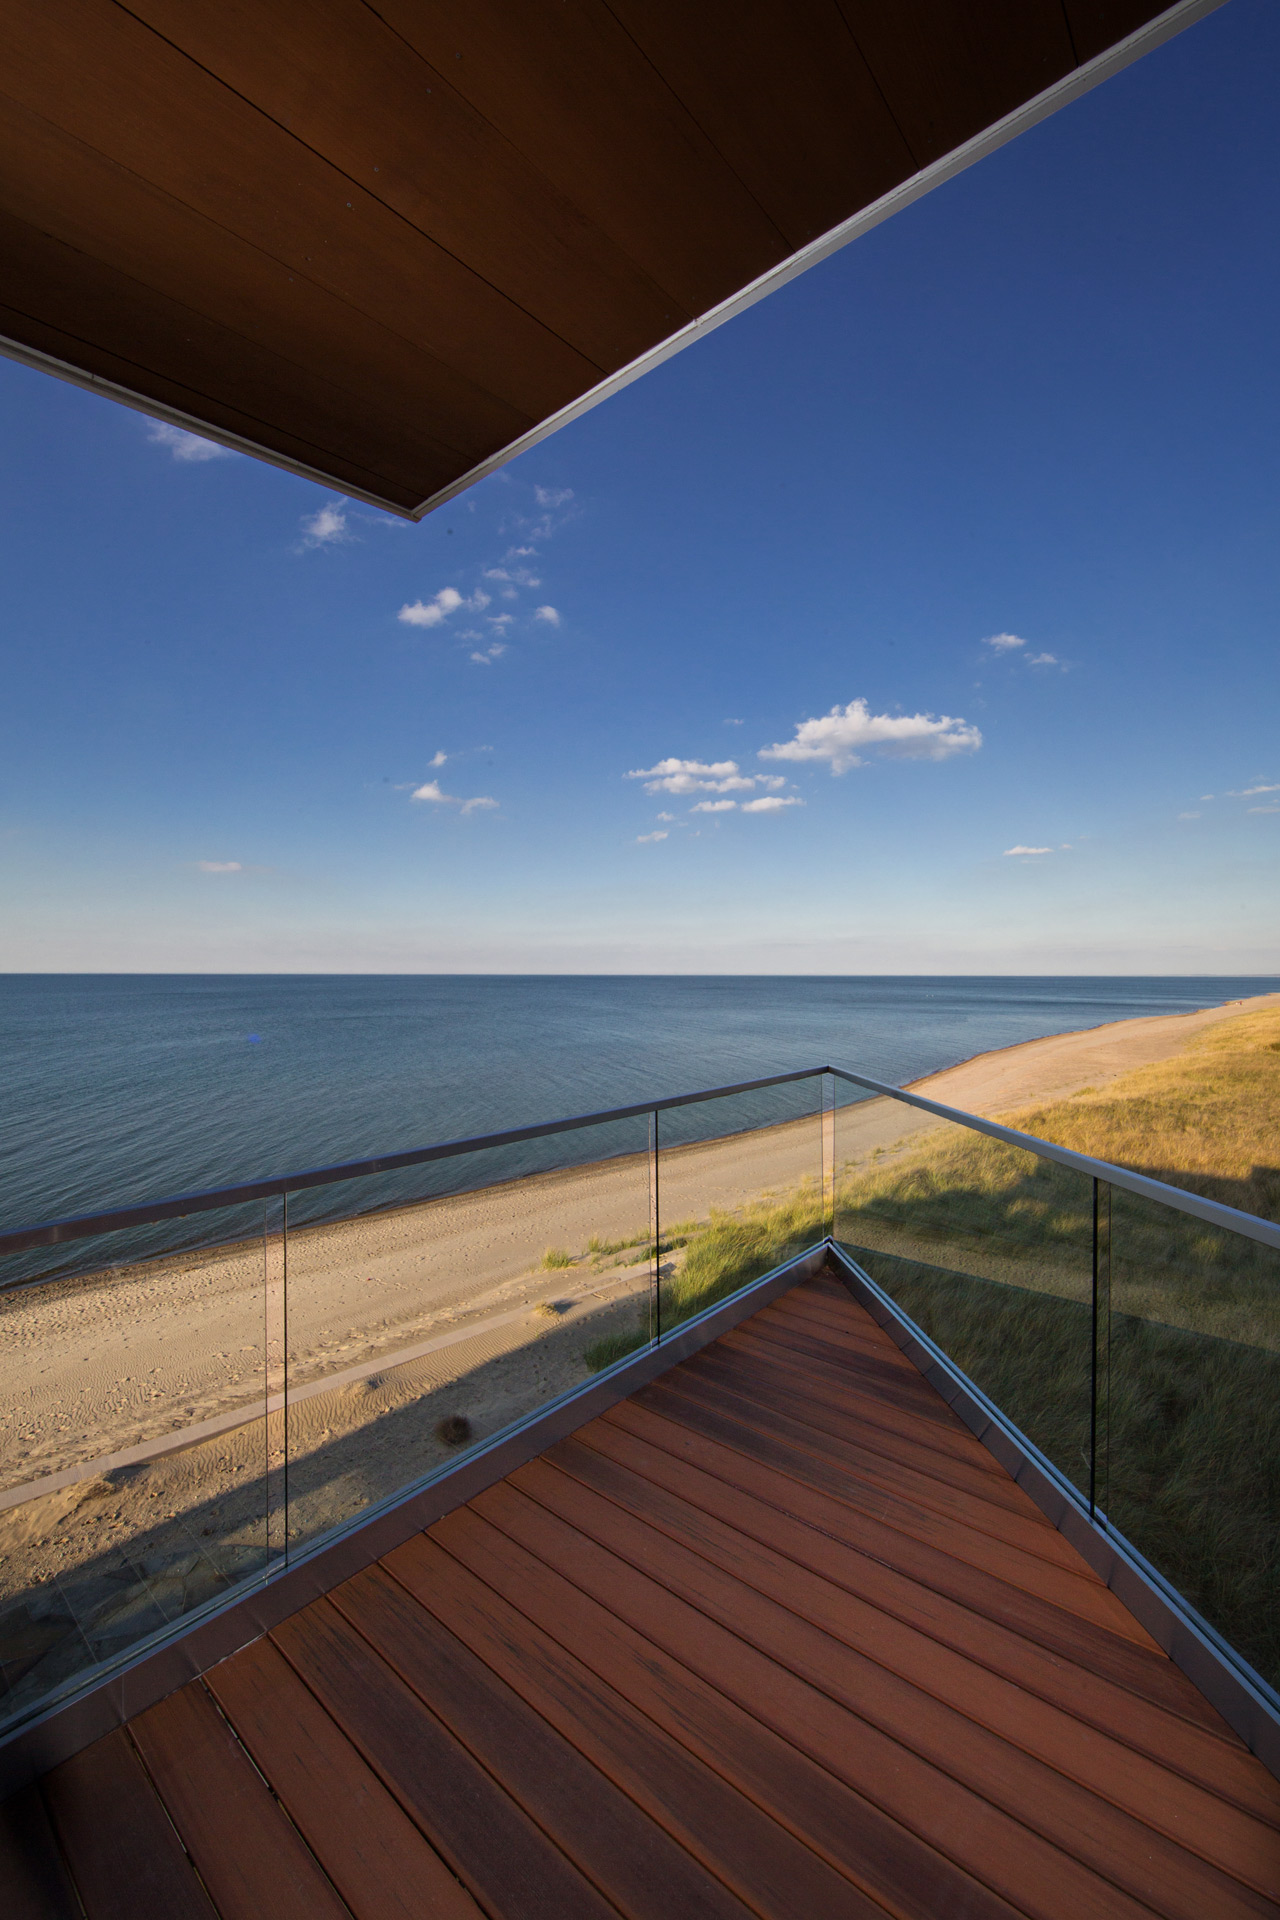 Beachfront Luxury Modern Home Exterior At Night: Chicago Illinois Exterior Architectural Photography Luxury Custom Home Builders Photographer IL